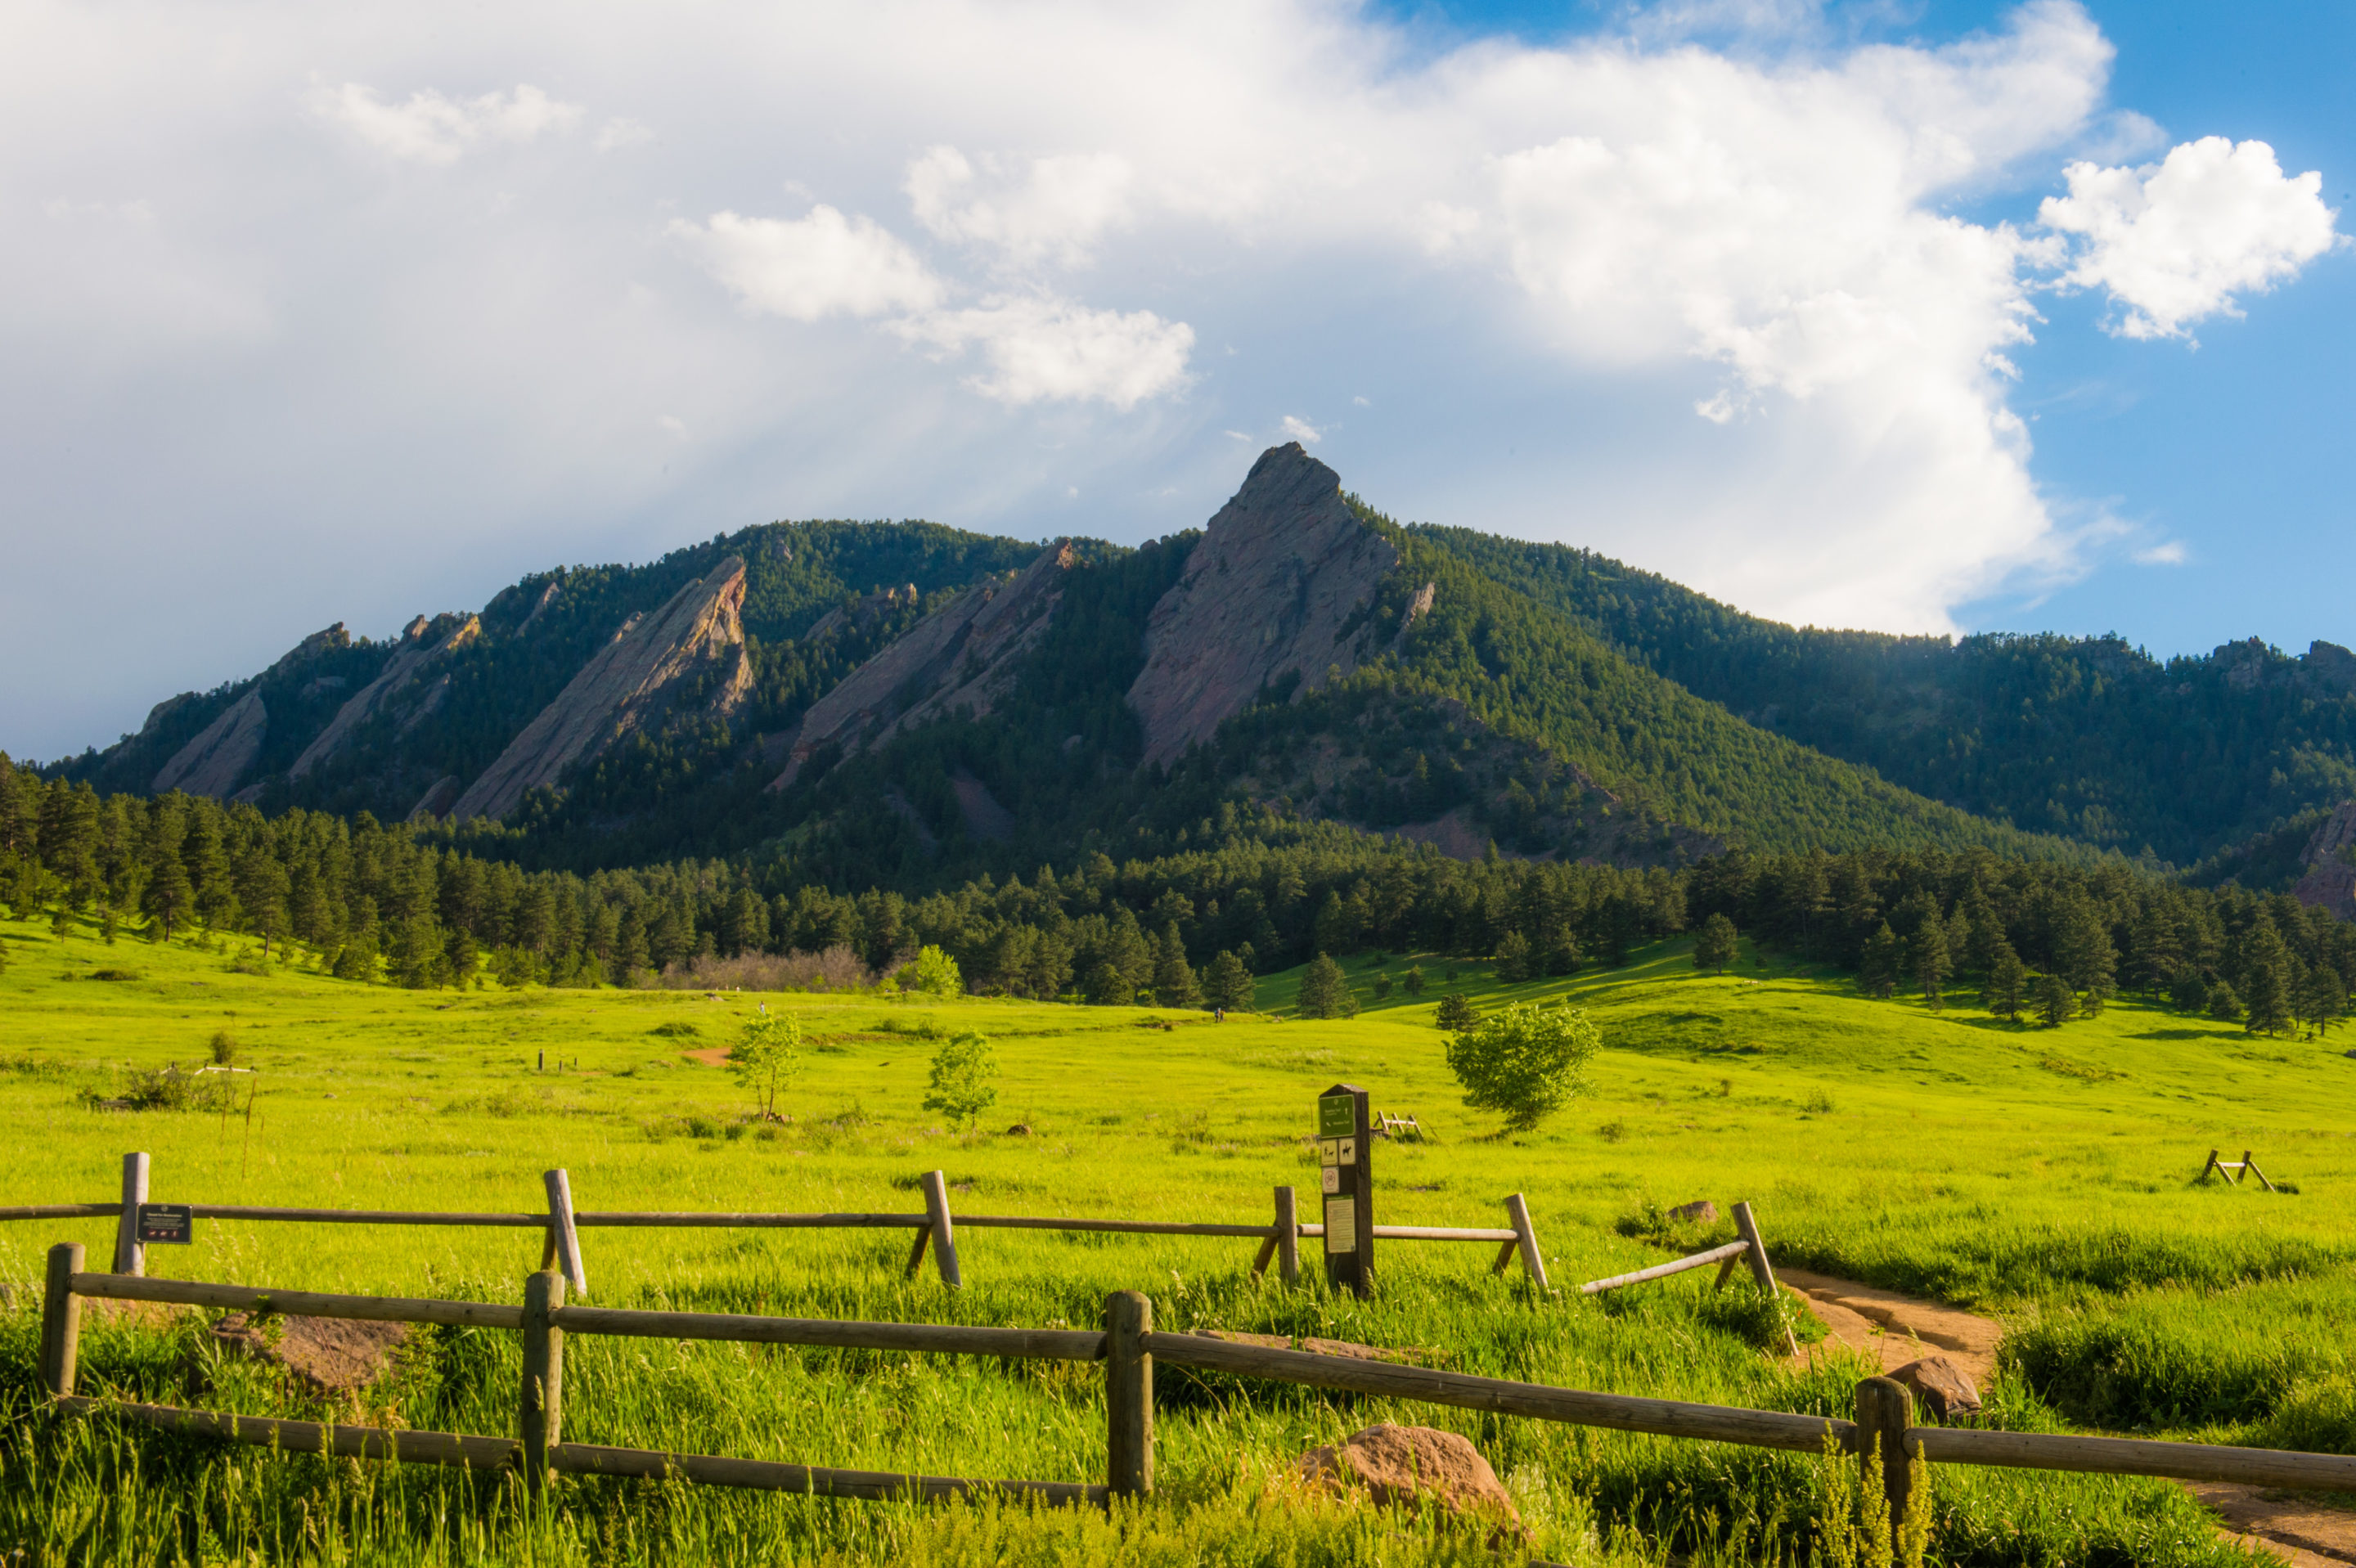 View of the Flatirons from Chautauqua Park entrance